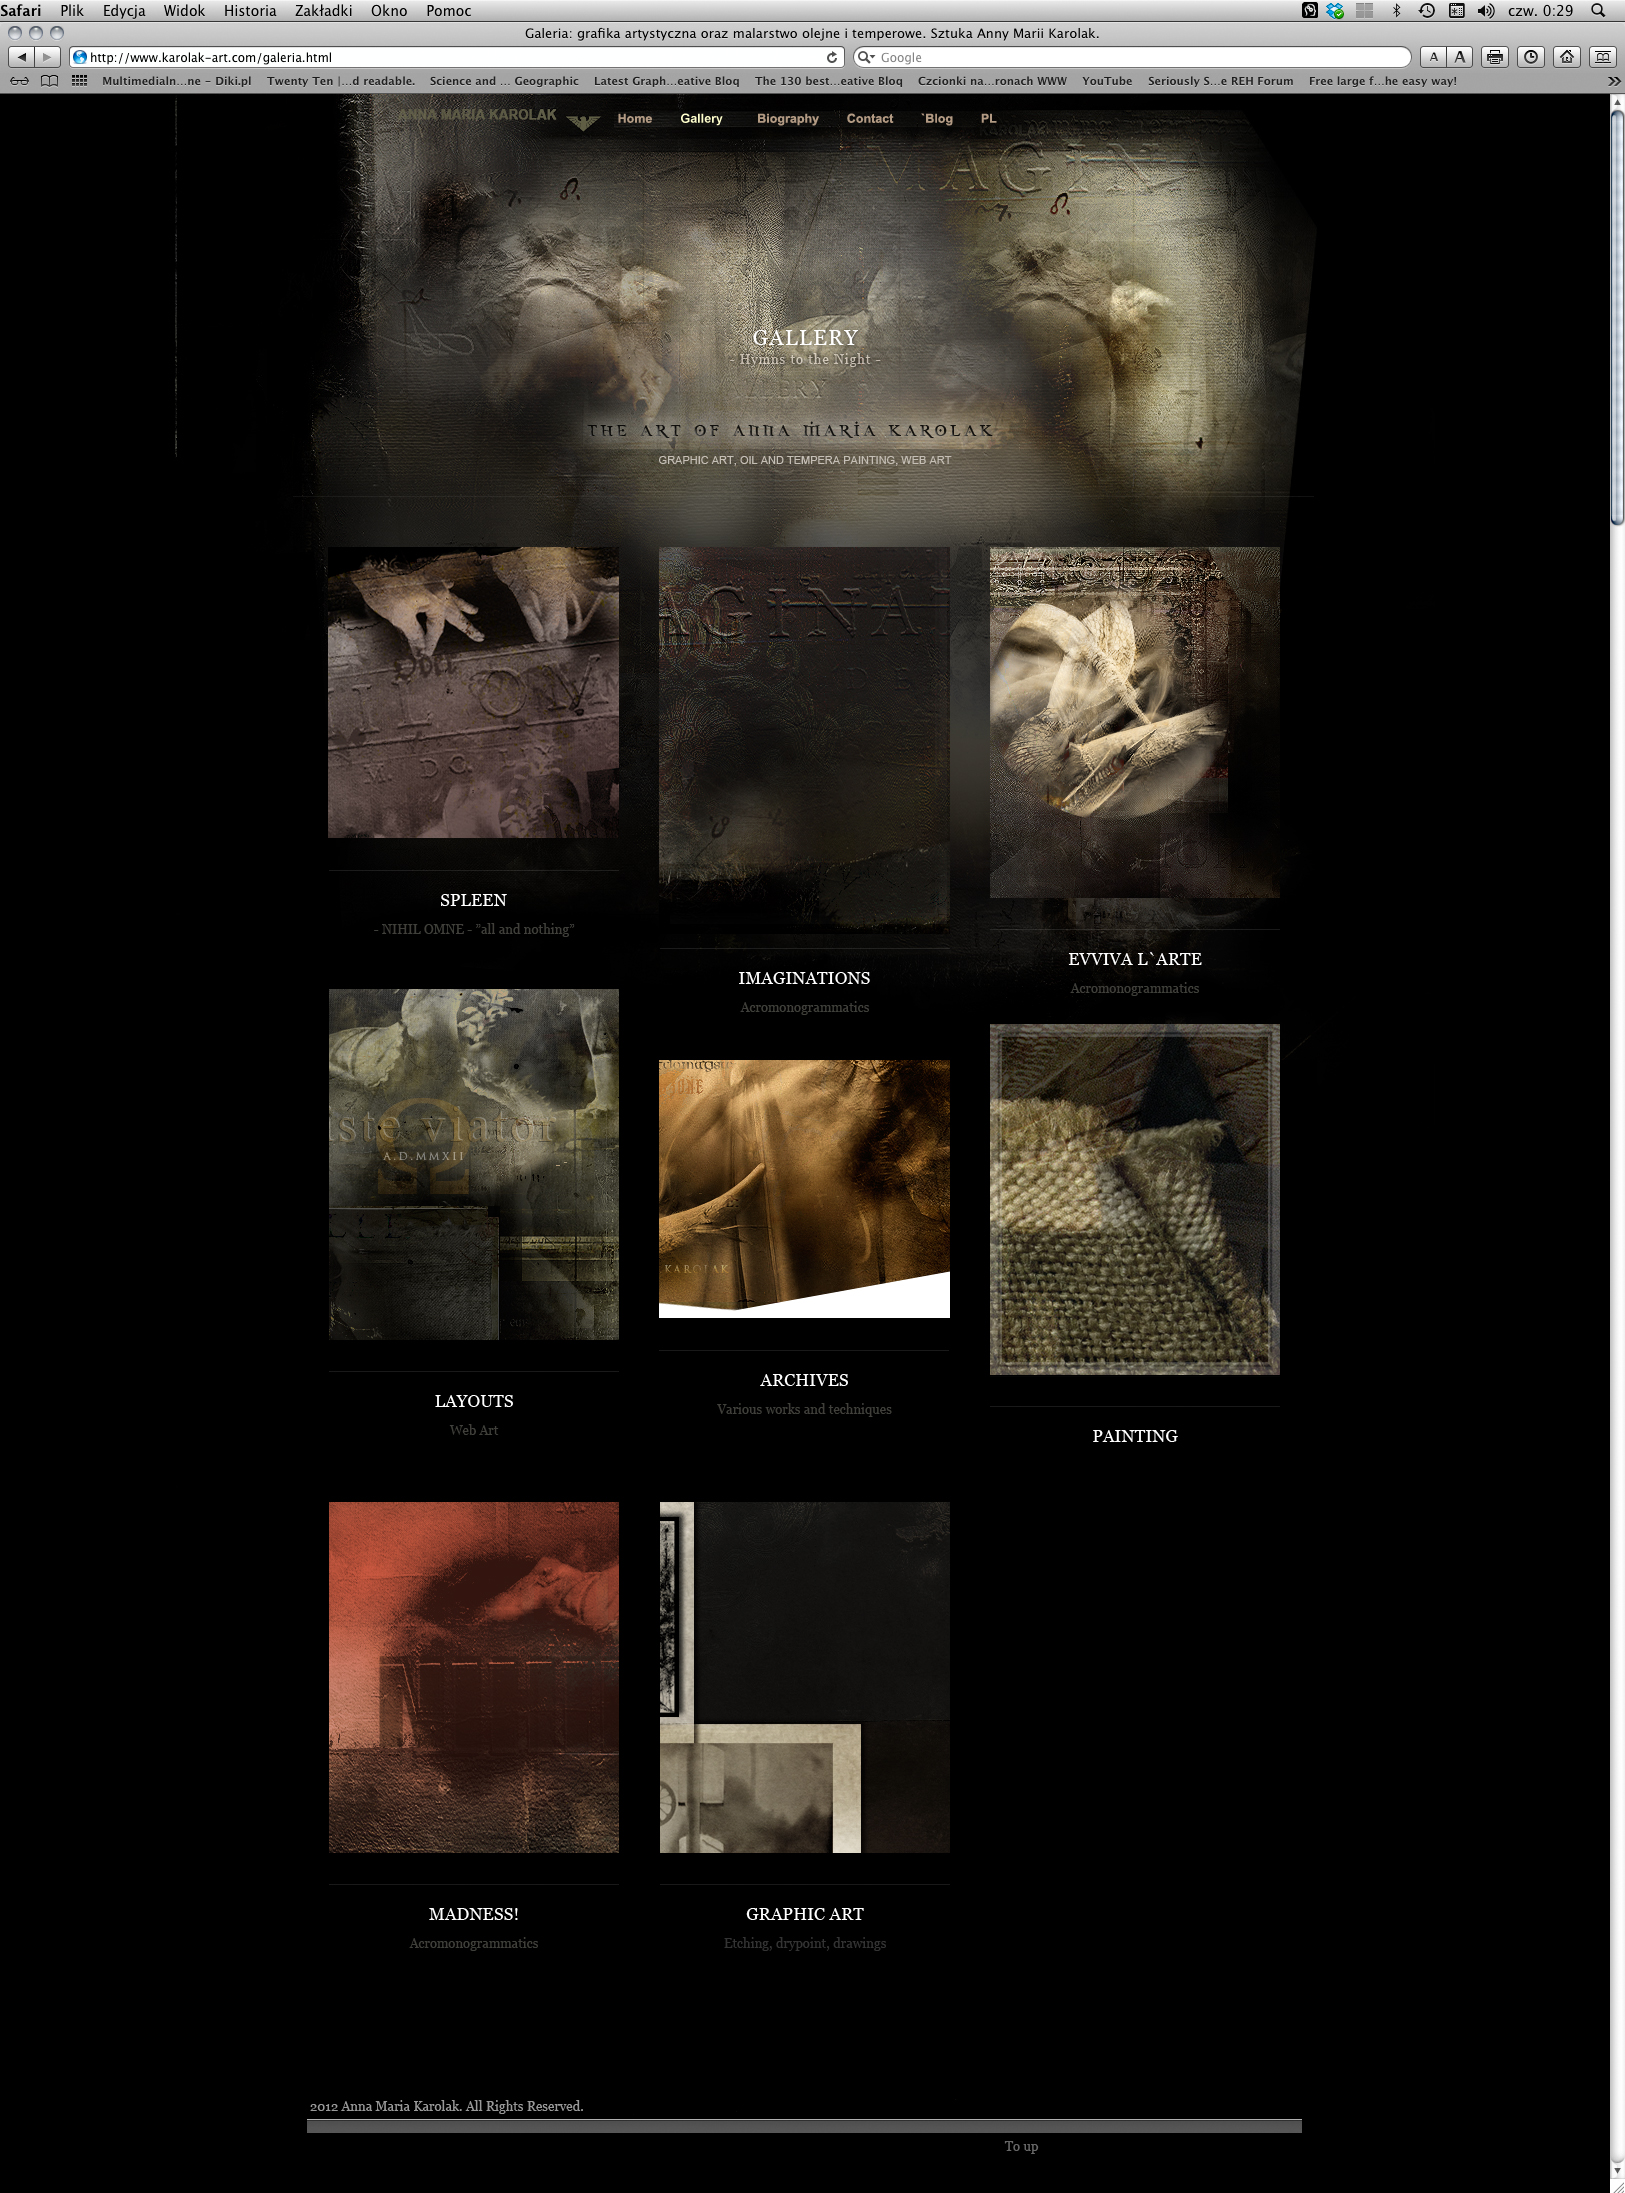 """The final project of the layout for my """"Gallery"""" page in this website in 2012. Artistic Web Design - Web Design for Artist."""